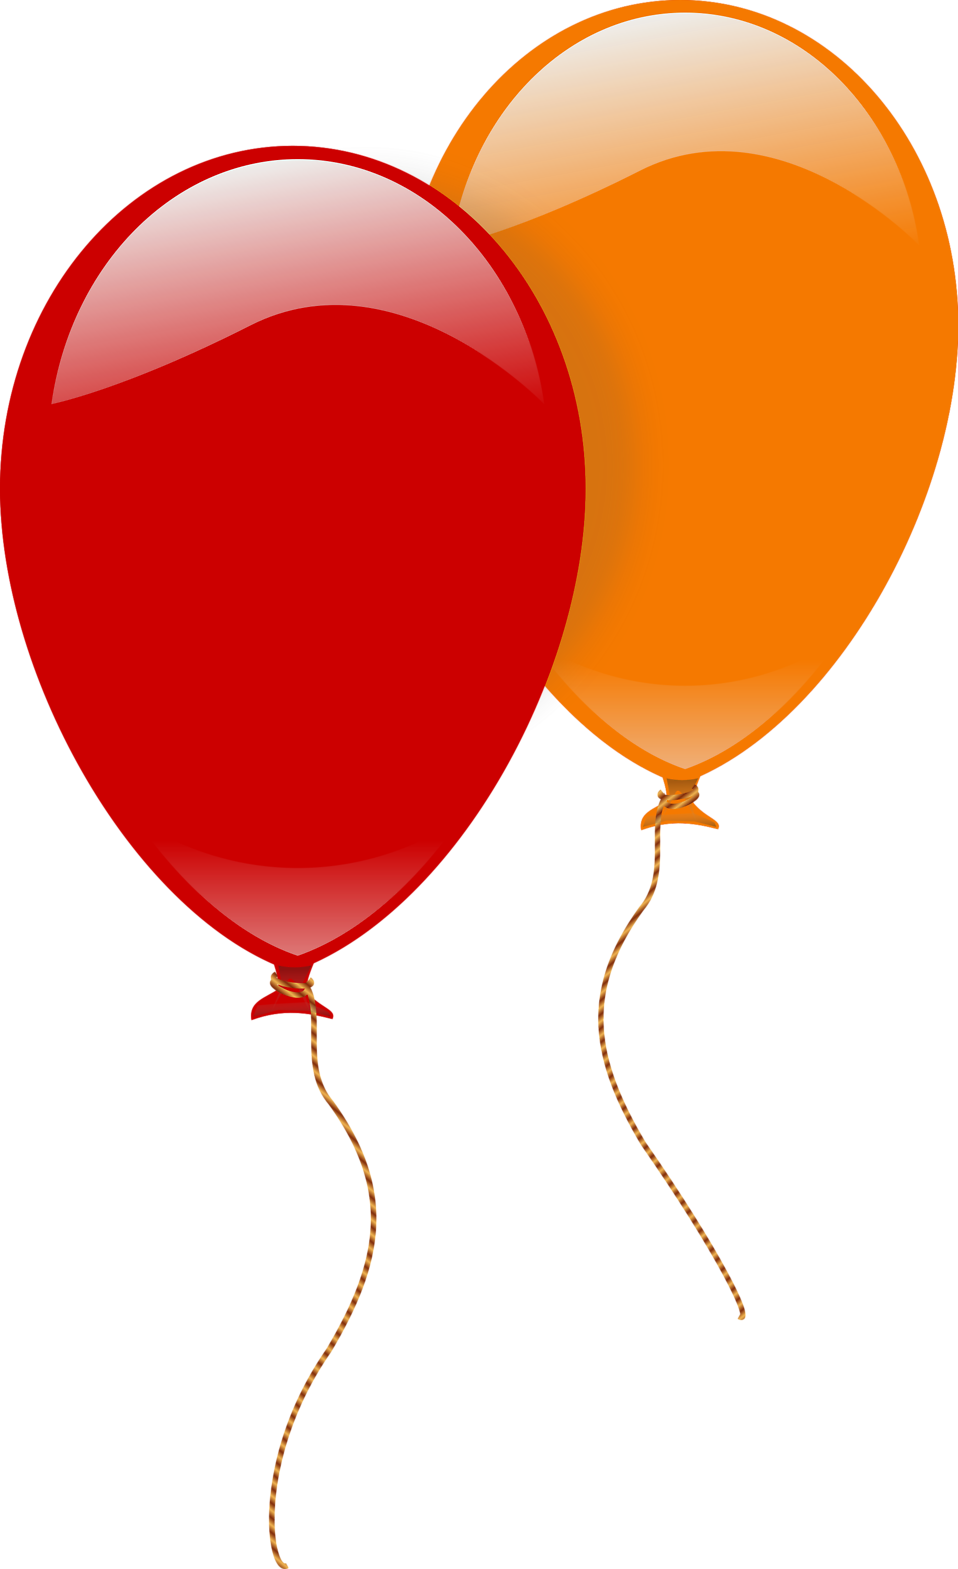 958x1569 Balloons Free Stock Photo Illustration Of A Red And An Orange